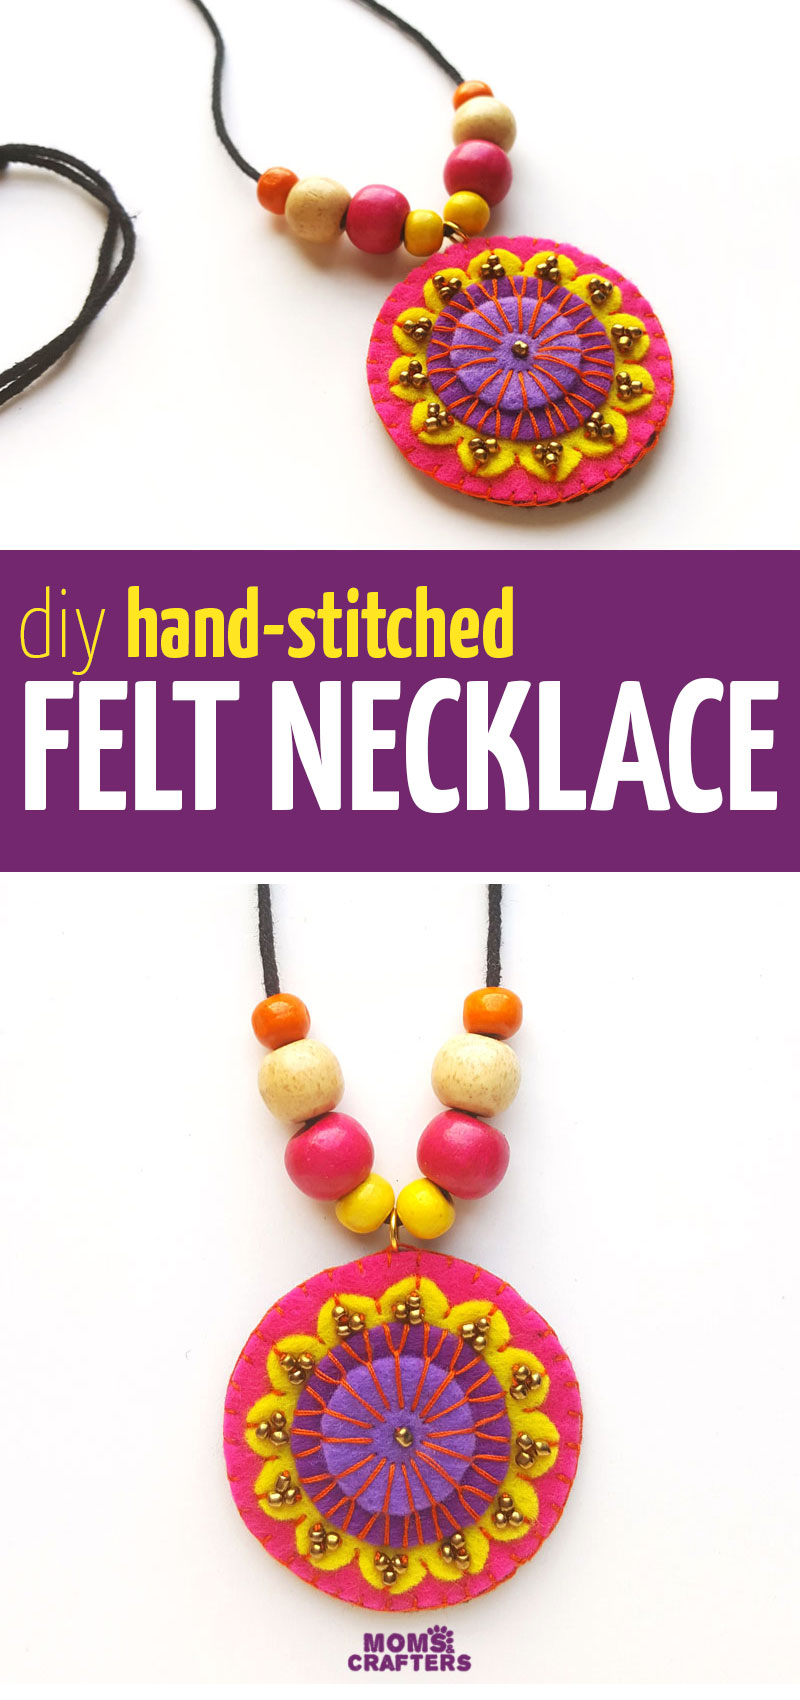 Click for the tutorial and template to make this fun colorful DIY felt necklace - you can hand stitch this beautiful sewing and jewelry making project for beginners! This is a fun jewellery craft tutorial for teens and tweens too!